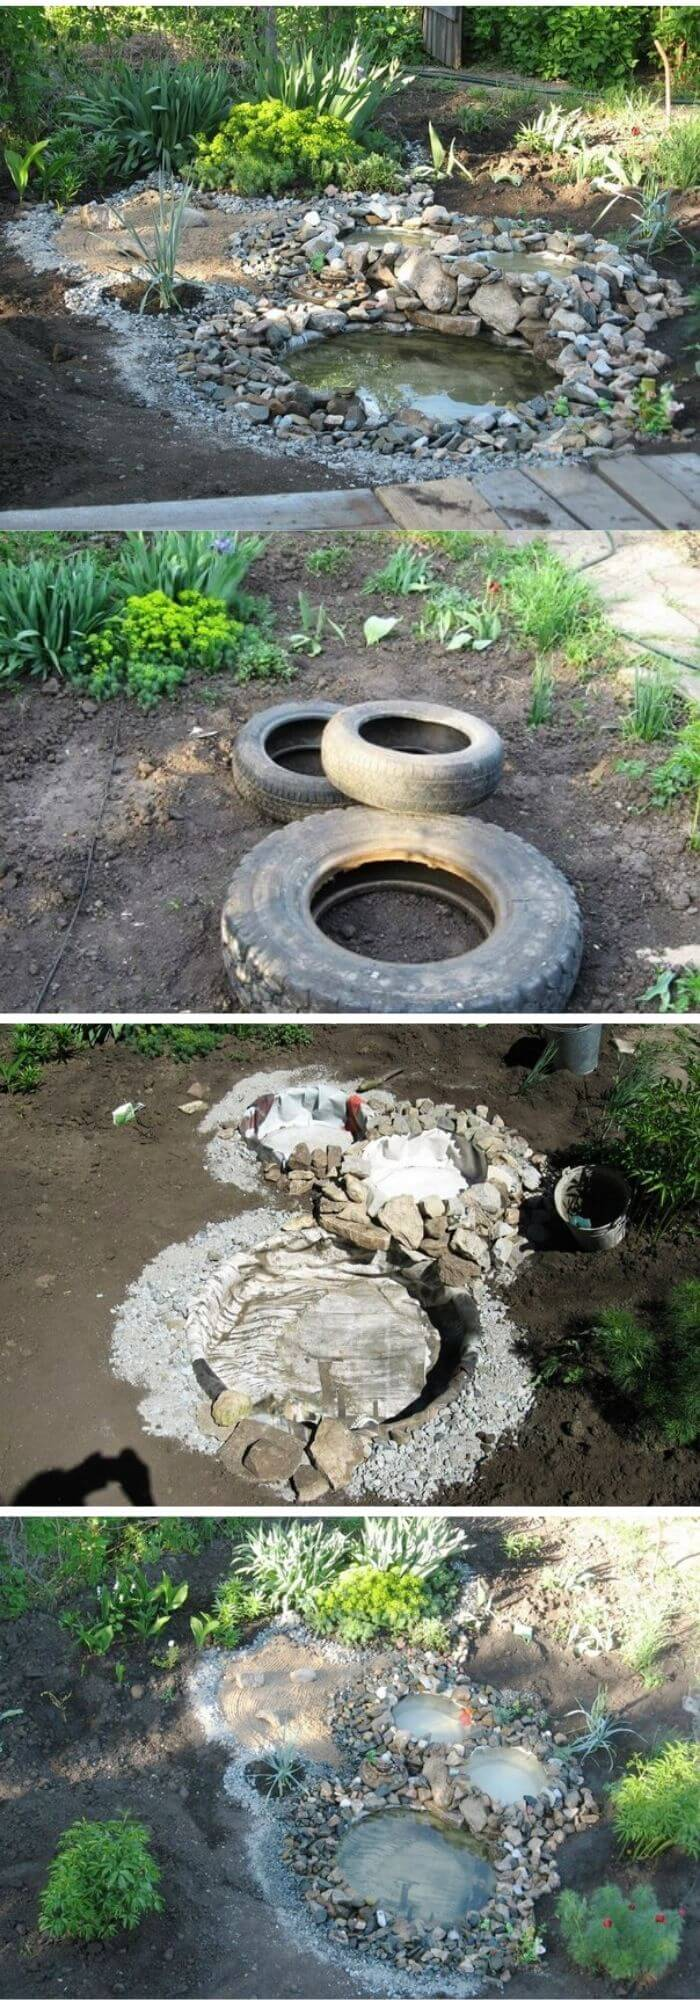 DIY Tire Pond